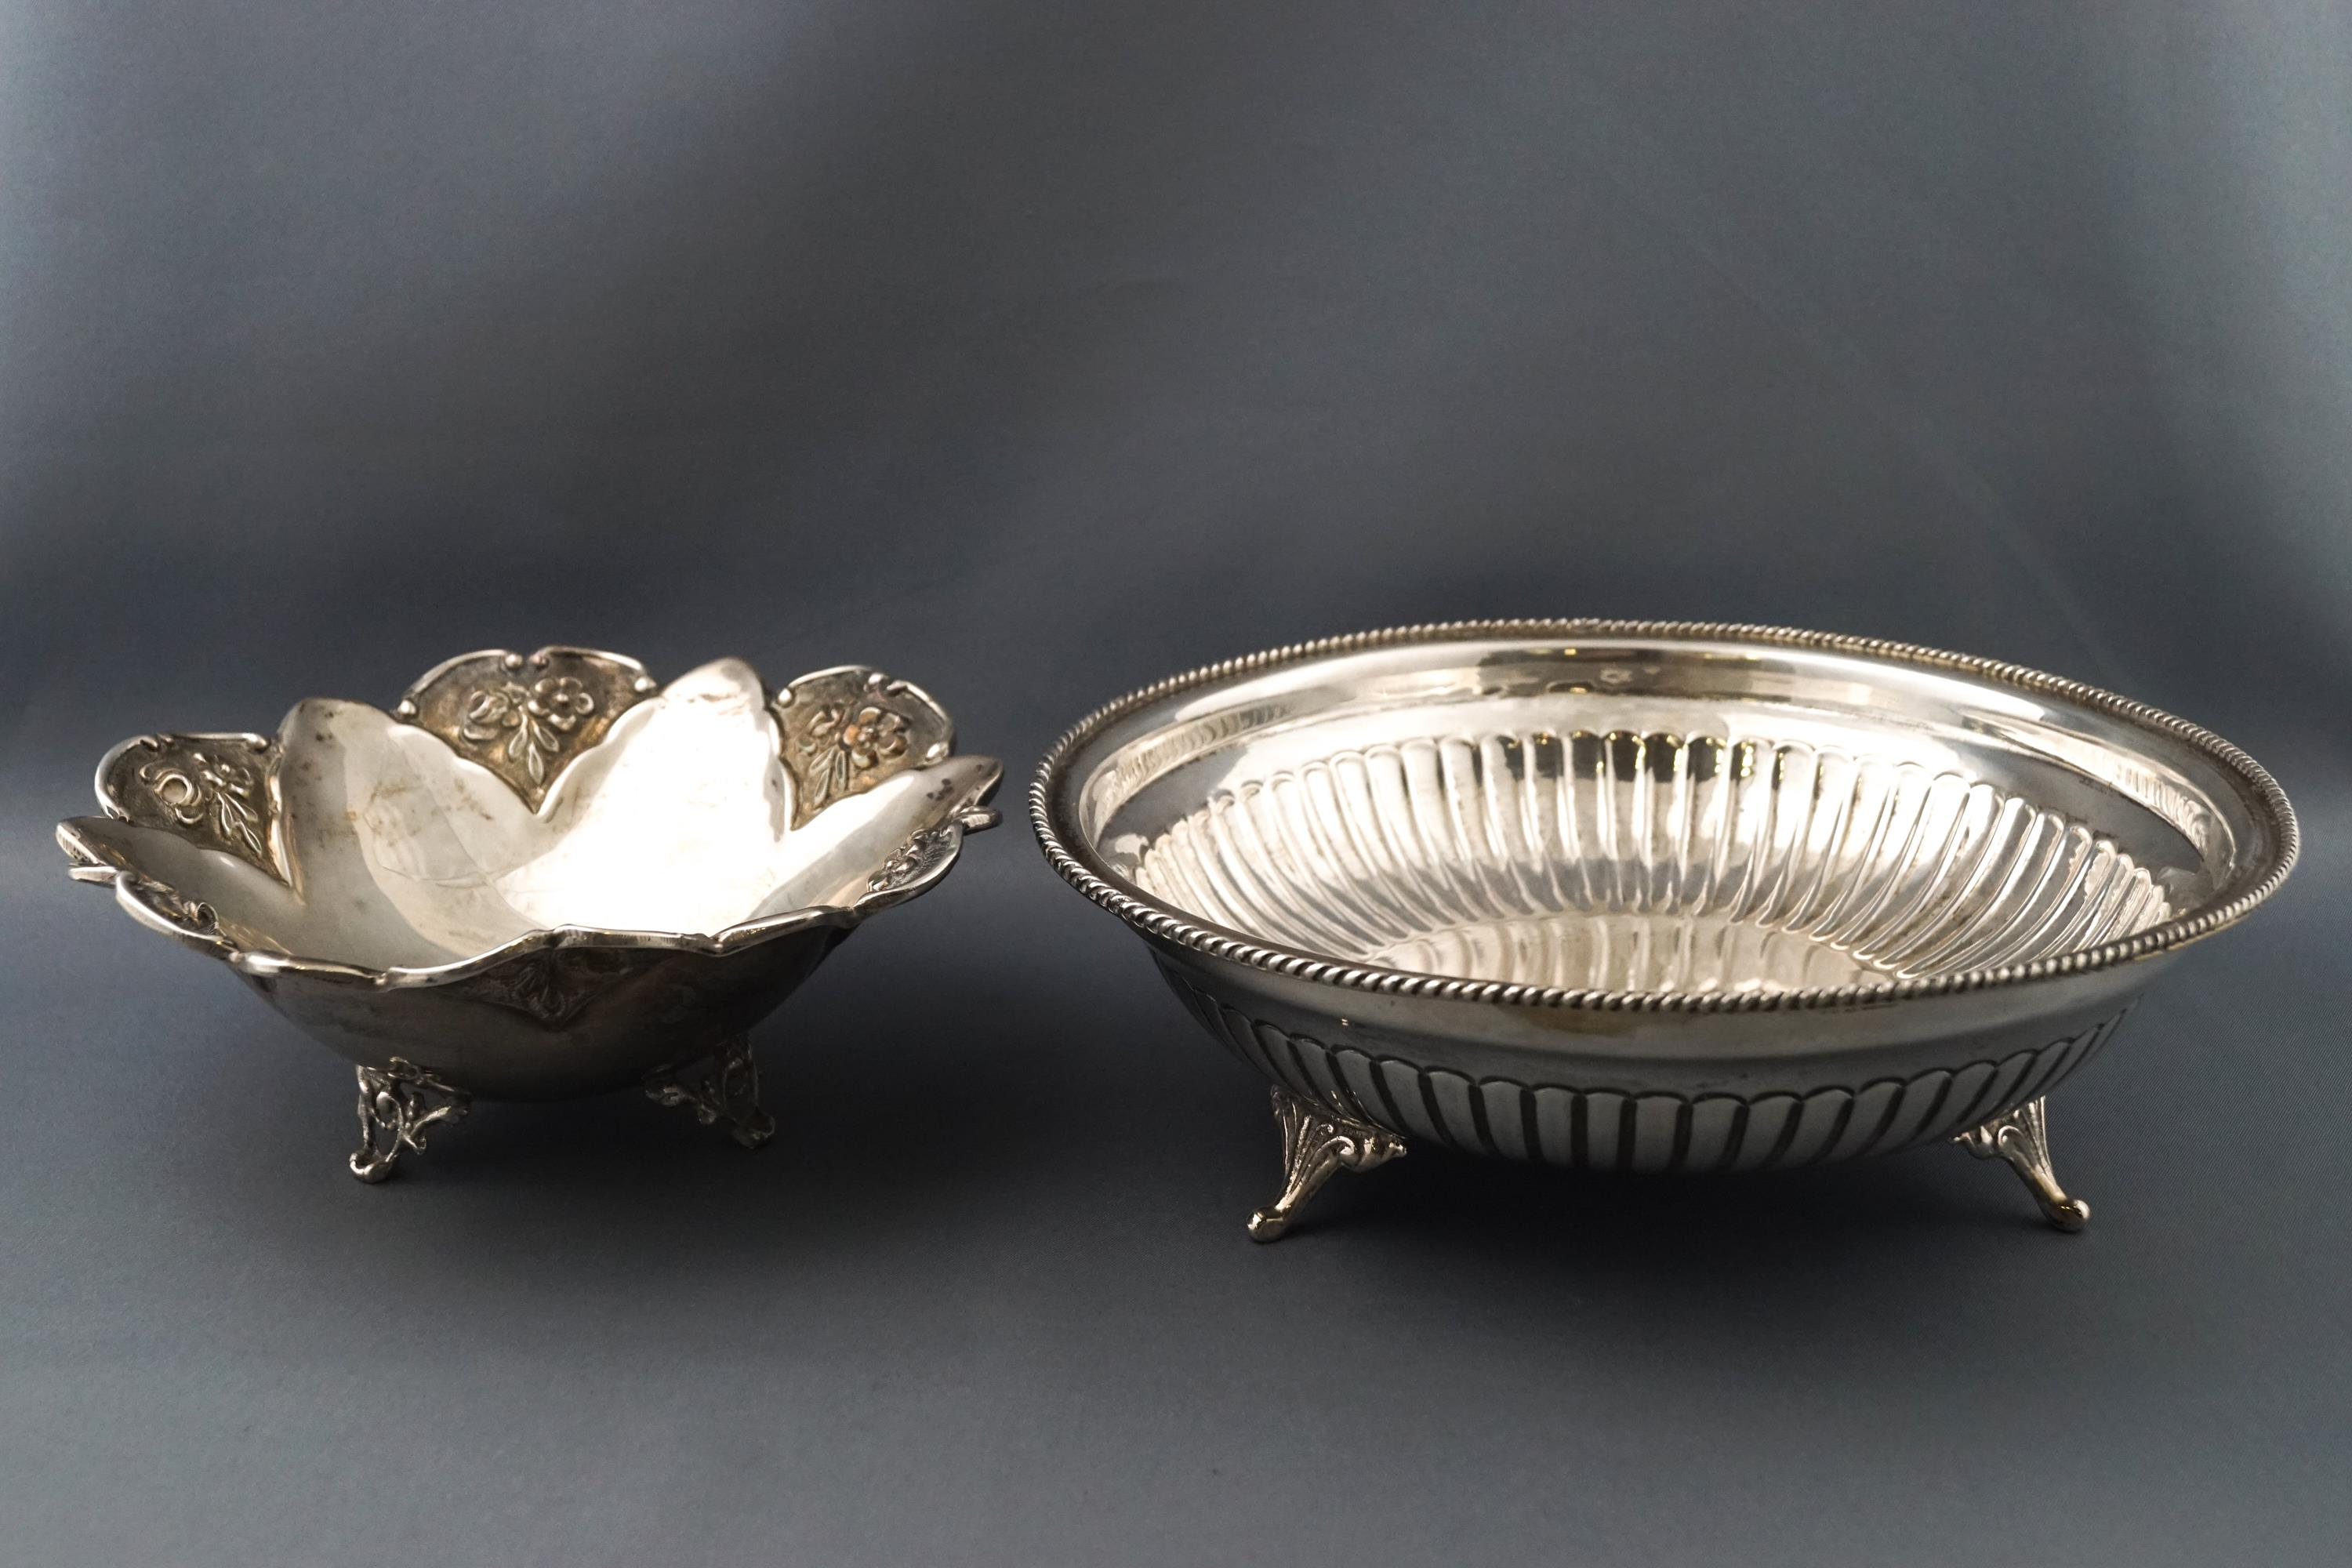 Lot 27 - A Continental white metal dish in the form of a flower, stamped 900,